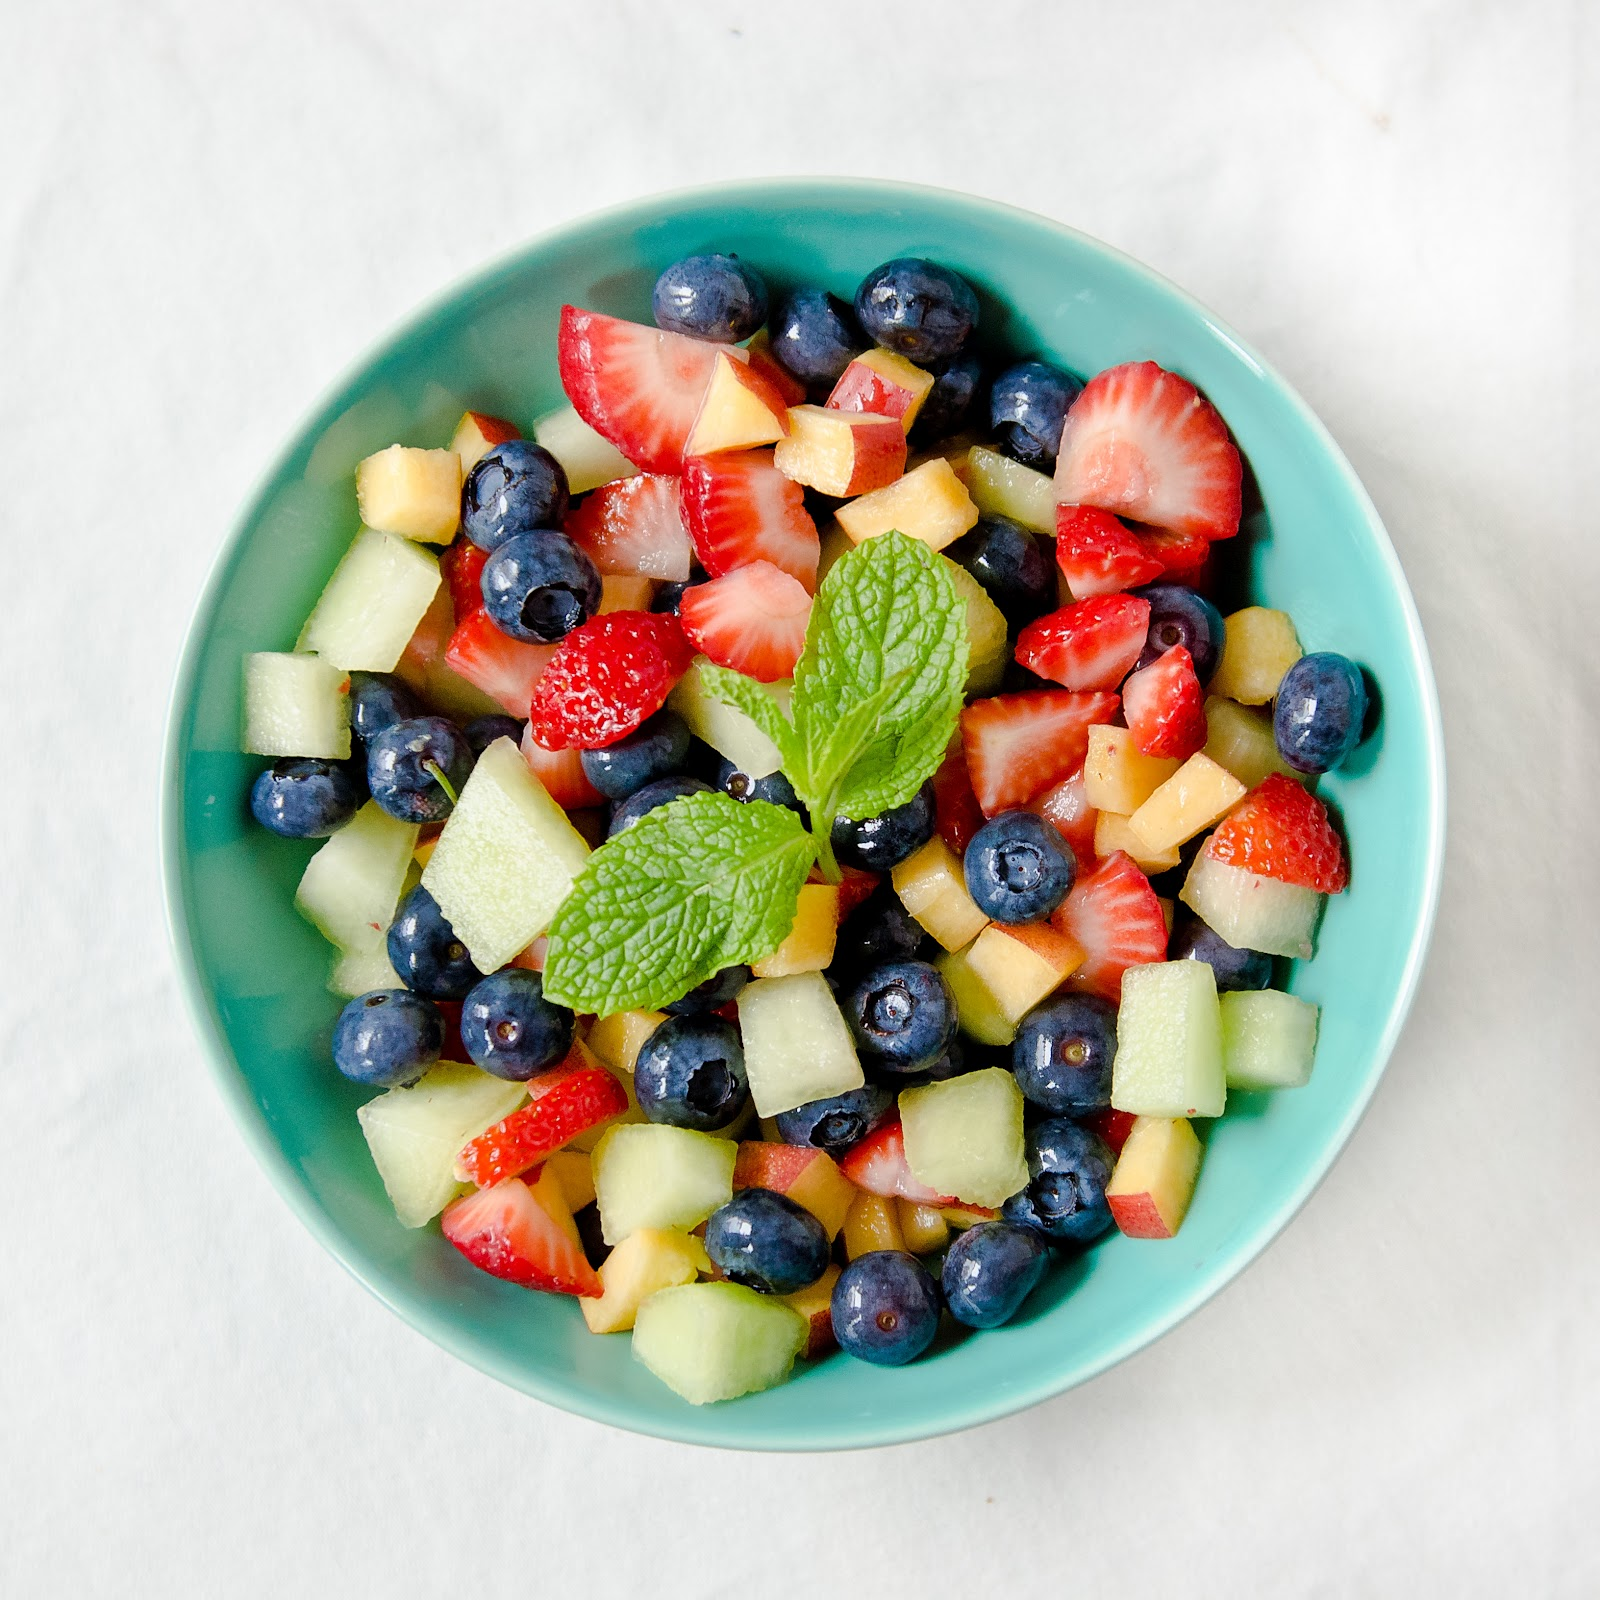 fruit salad yummy yummy glycemic index fruit